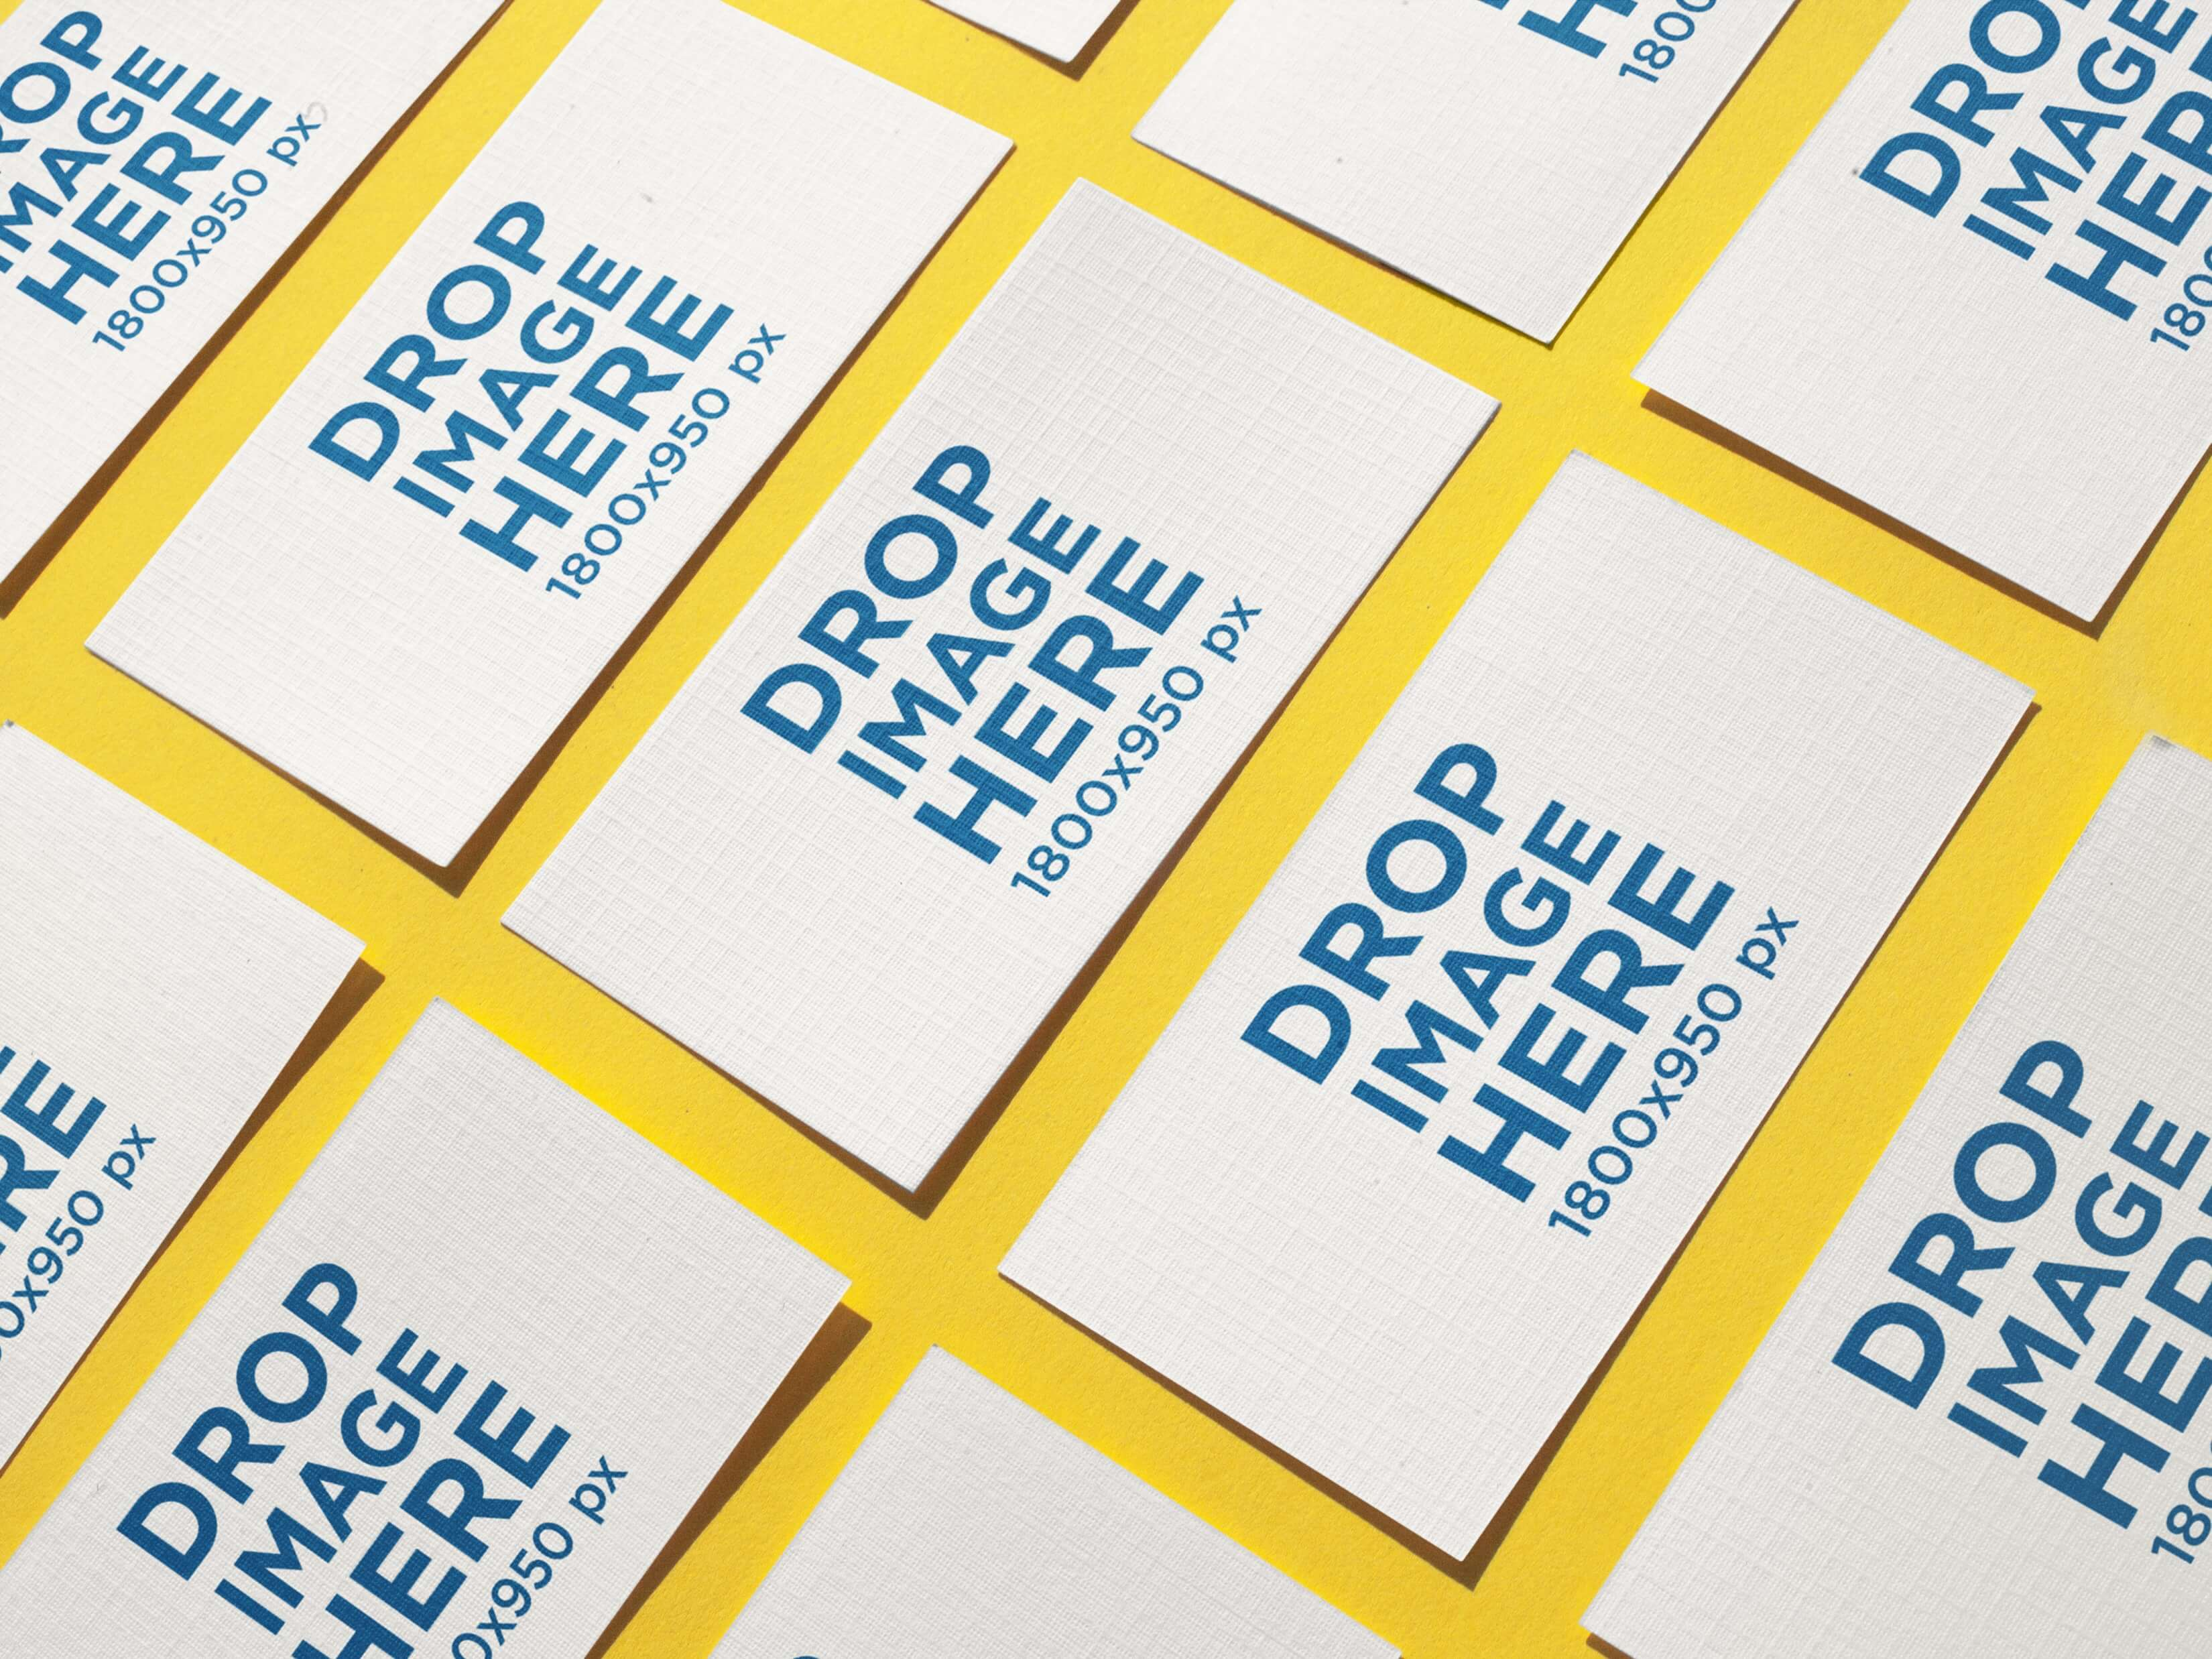 MOCKUP OF BUSINESS CARDS LYING ON A YELLOW SURFACE